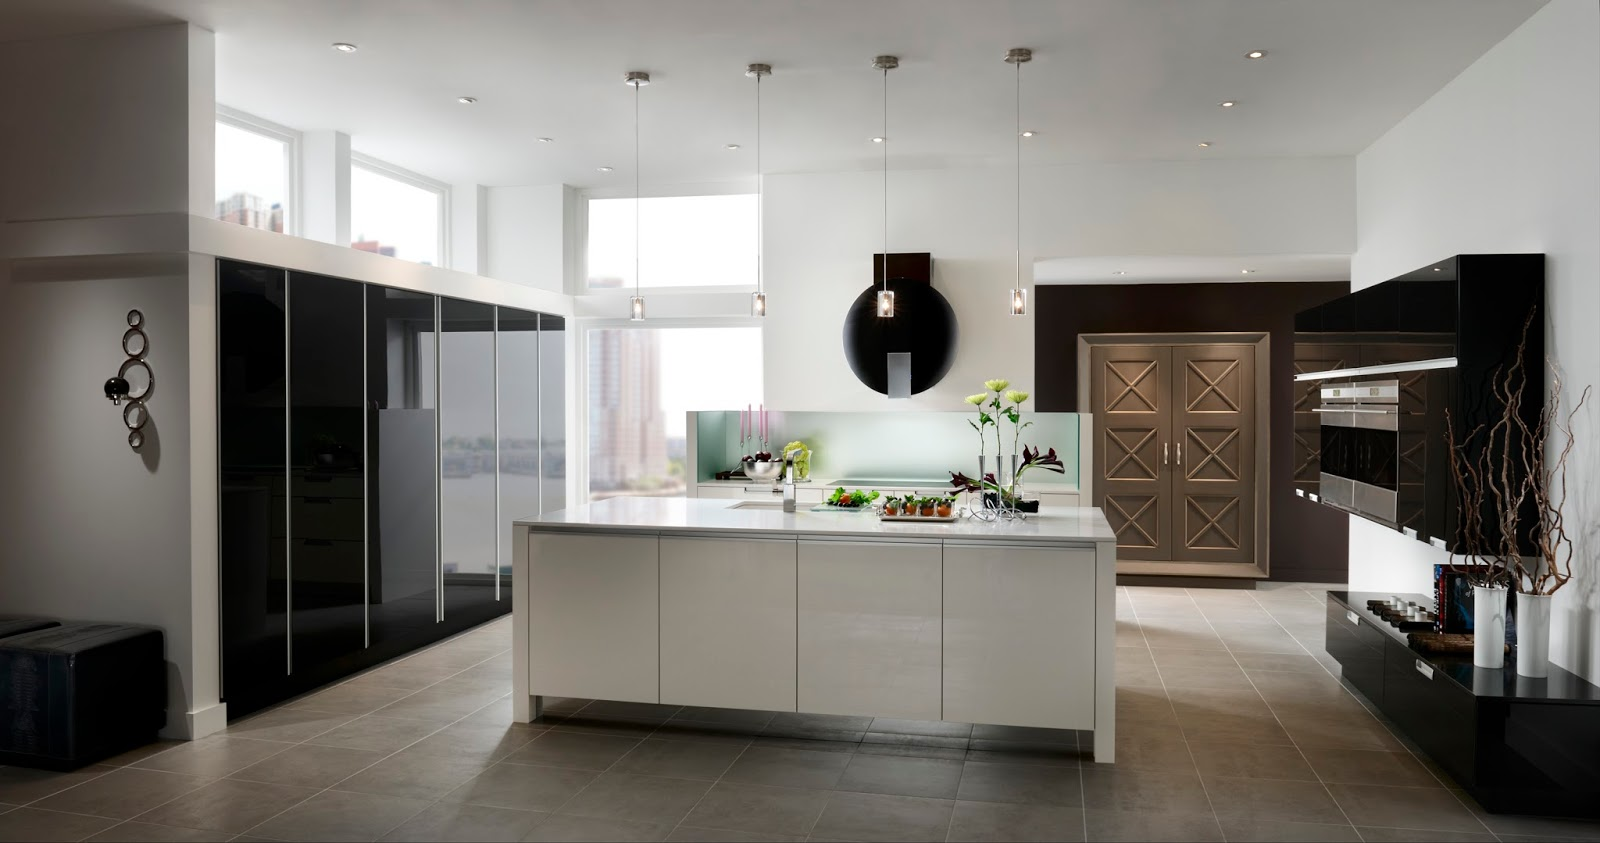 Brookhaven 20kitchen 20cabinets design your kitchen Style Up Your Kitchen Space with Attractive Custom Cabinet Designs